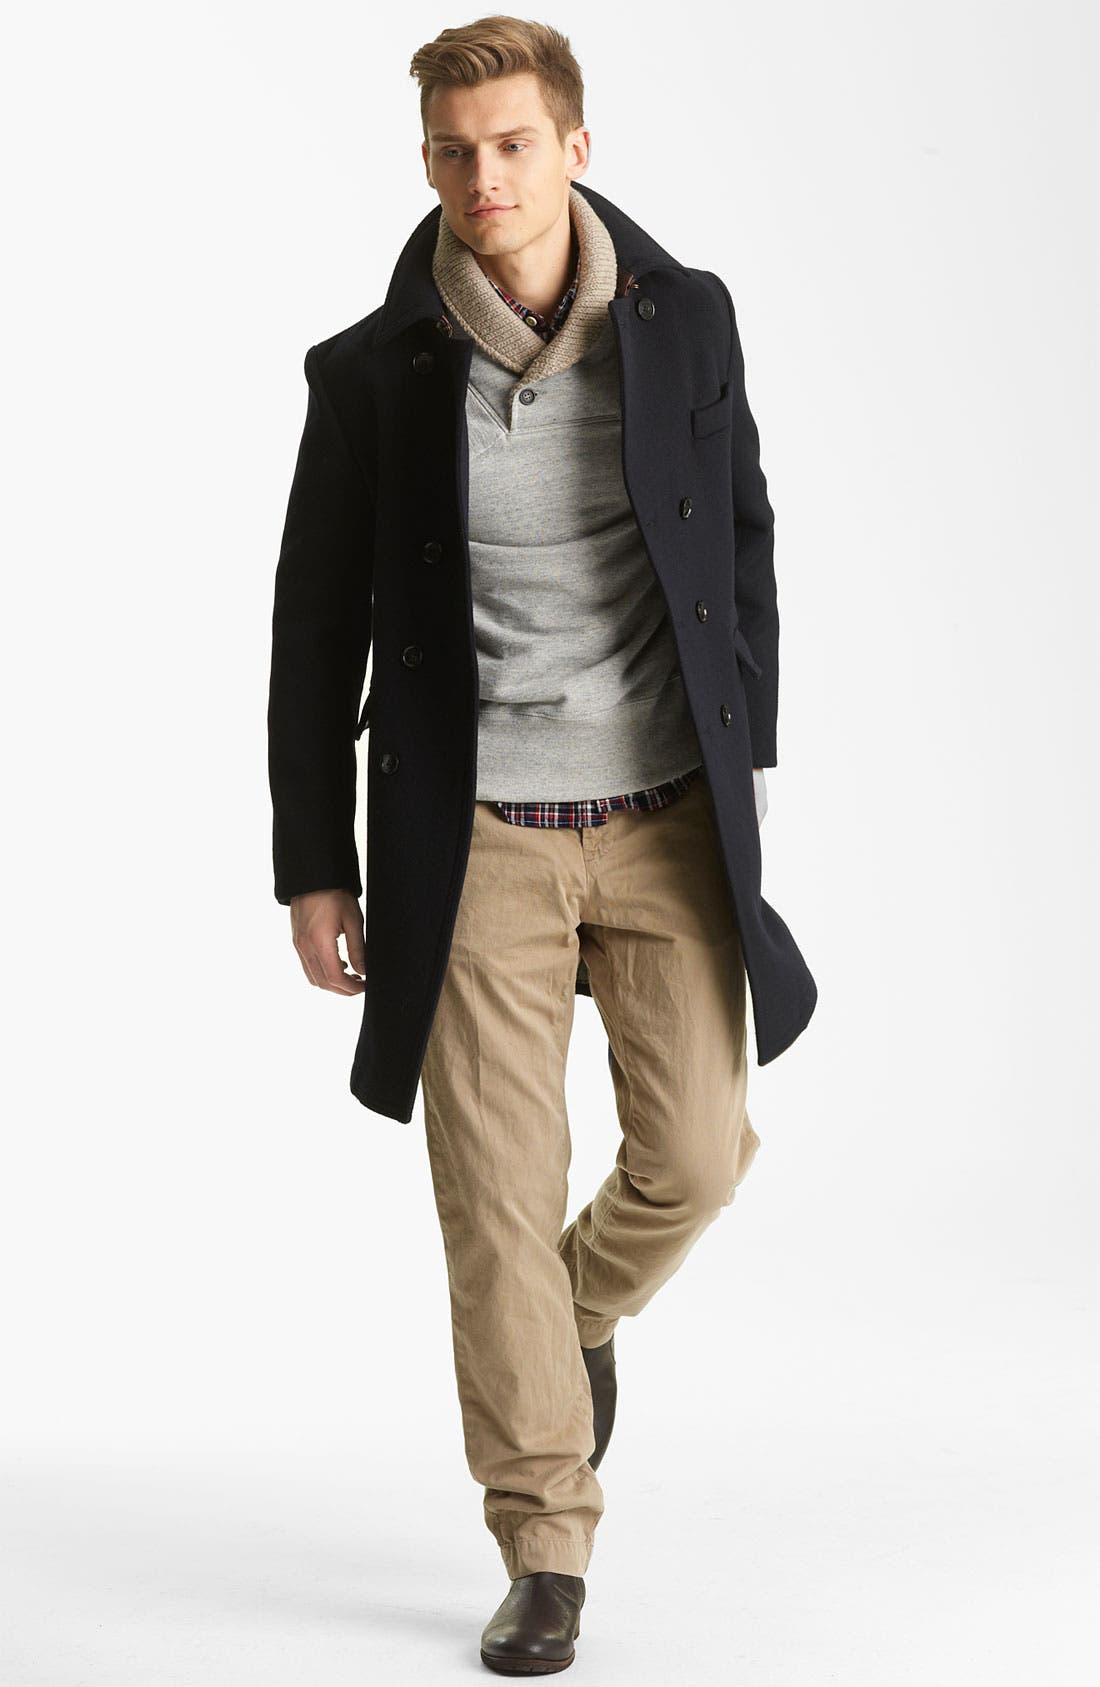 Alternate Image 1 Selected - Billy Reid Coat, Shawl Collar Sweatshirt, Woven Shirt & Mason's Pants